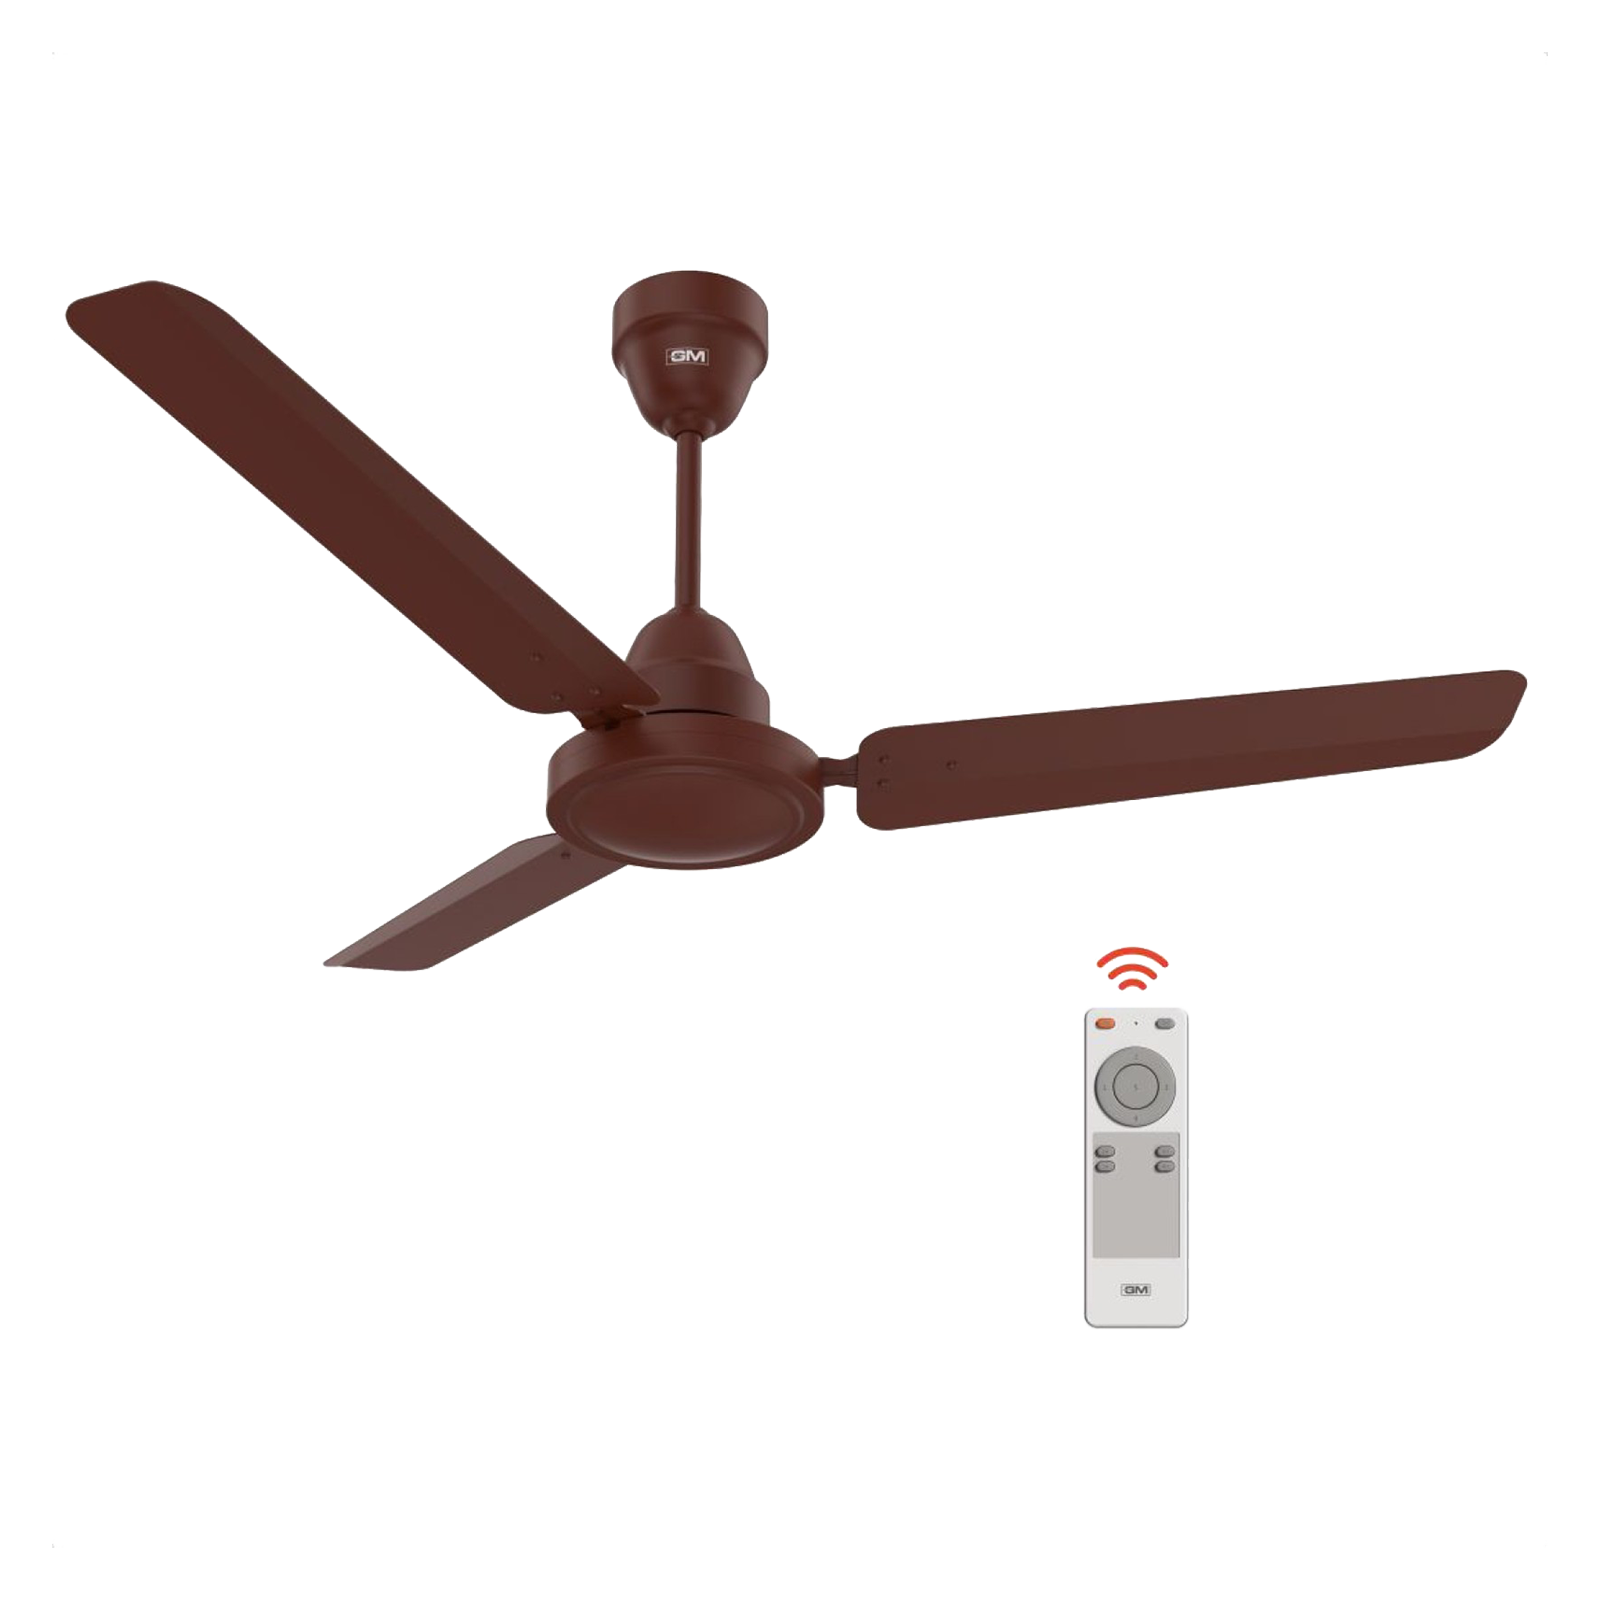 GM Excel 120 cm Sweep 3 Blade Ceiling Fan (Remote Control, CFB480048BRMT, Brown)_1